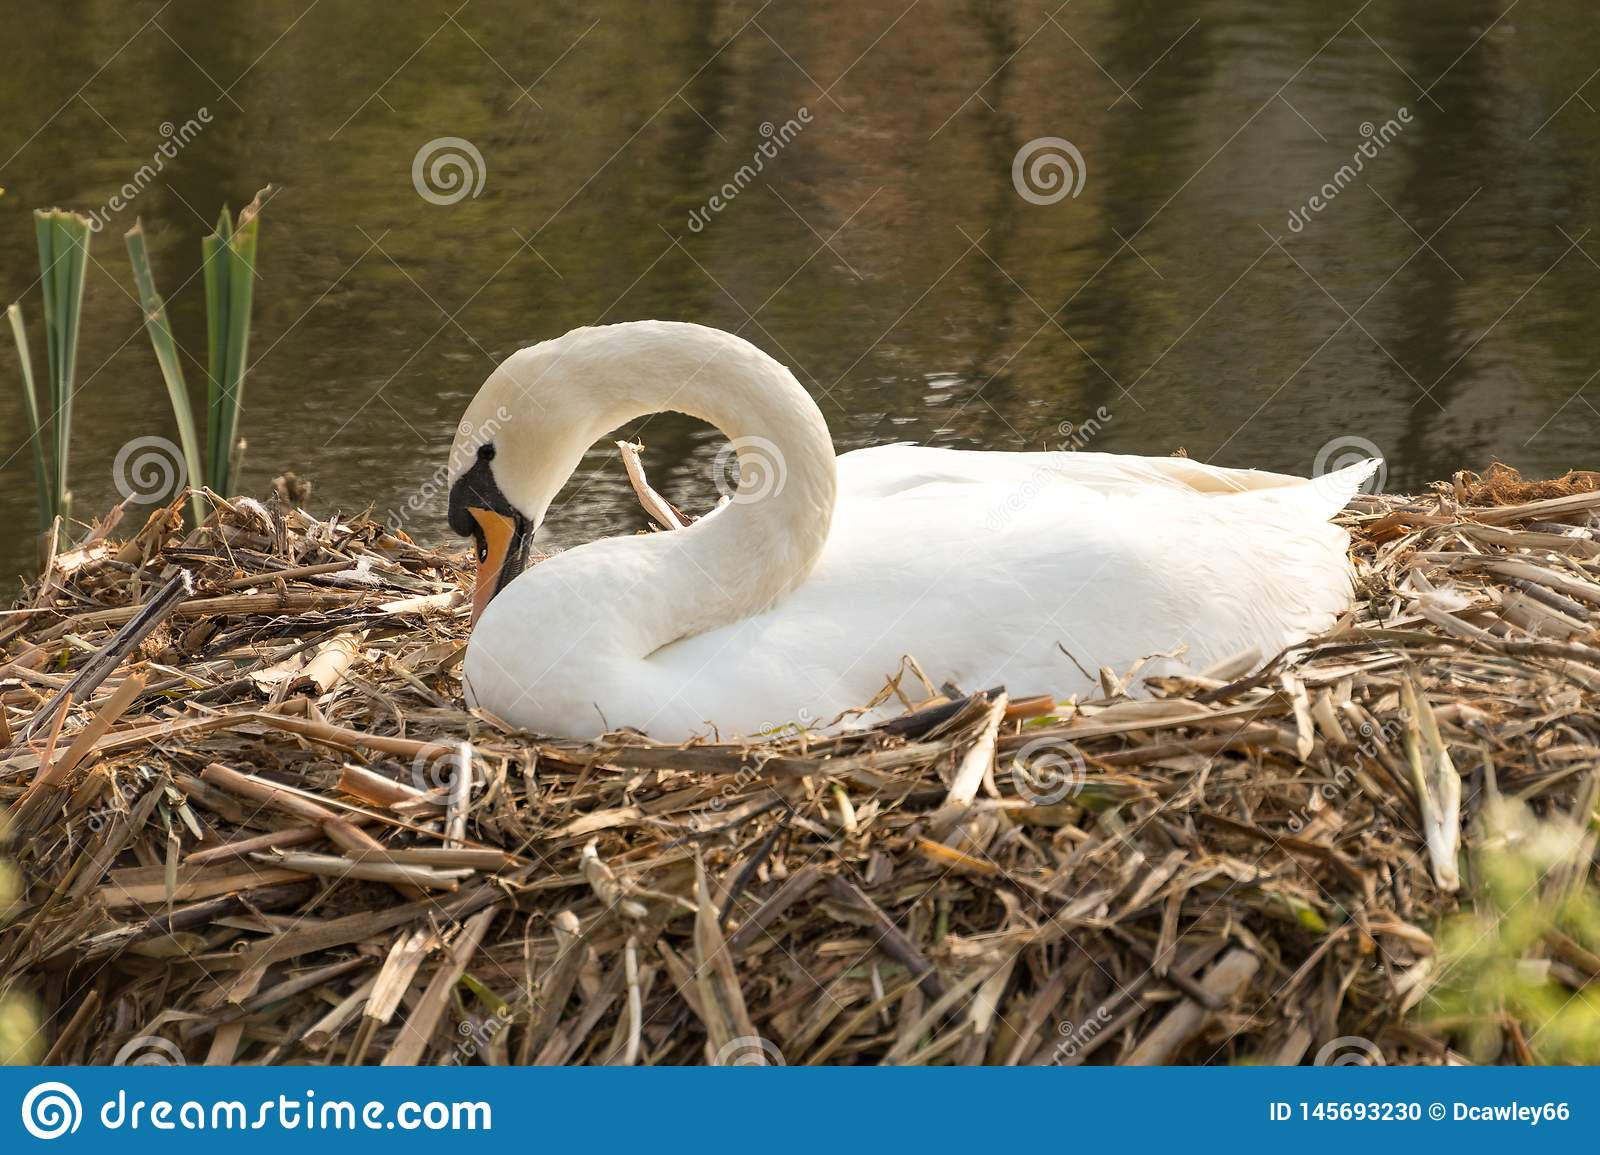 Swan nesting on a reed nest.